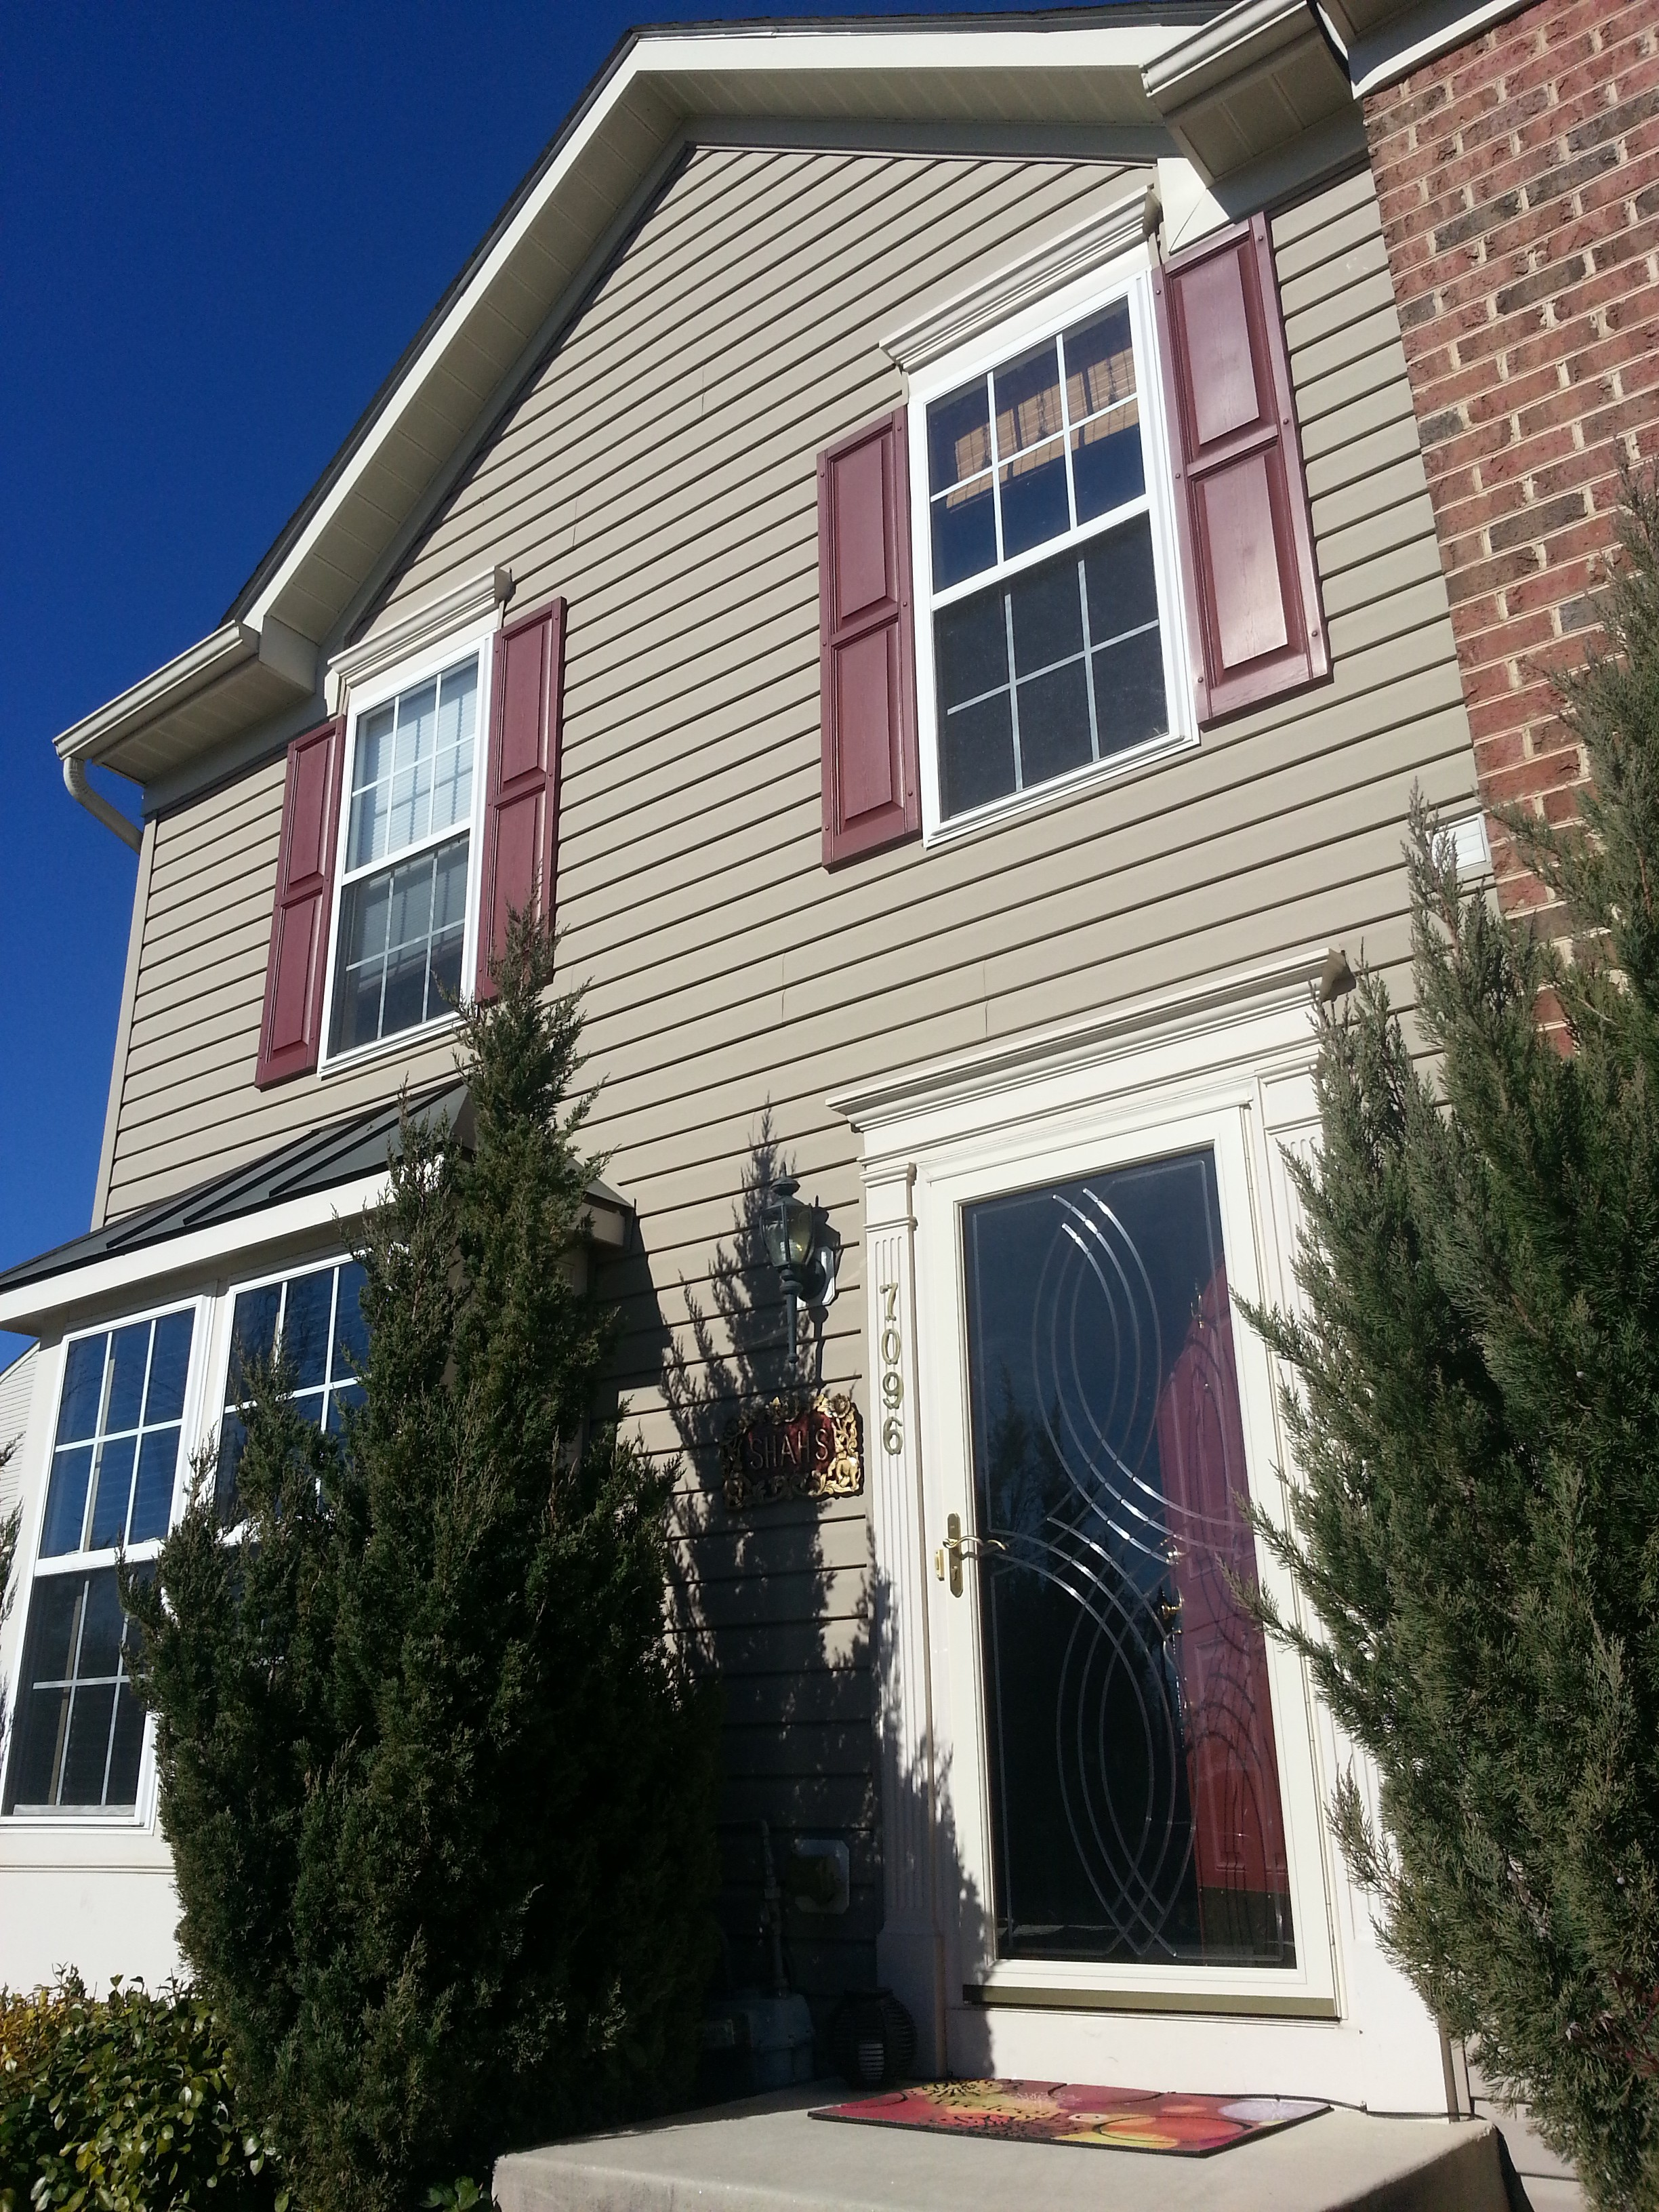 7096 Maiden Point Pl Elkridge Md 21075 3 Bedroom House For Rent For 2 100 Month Zumper